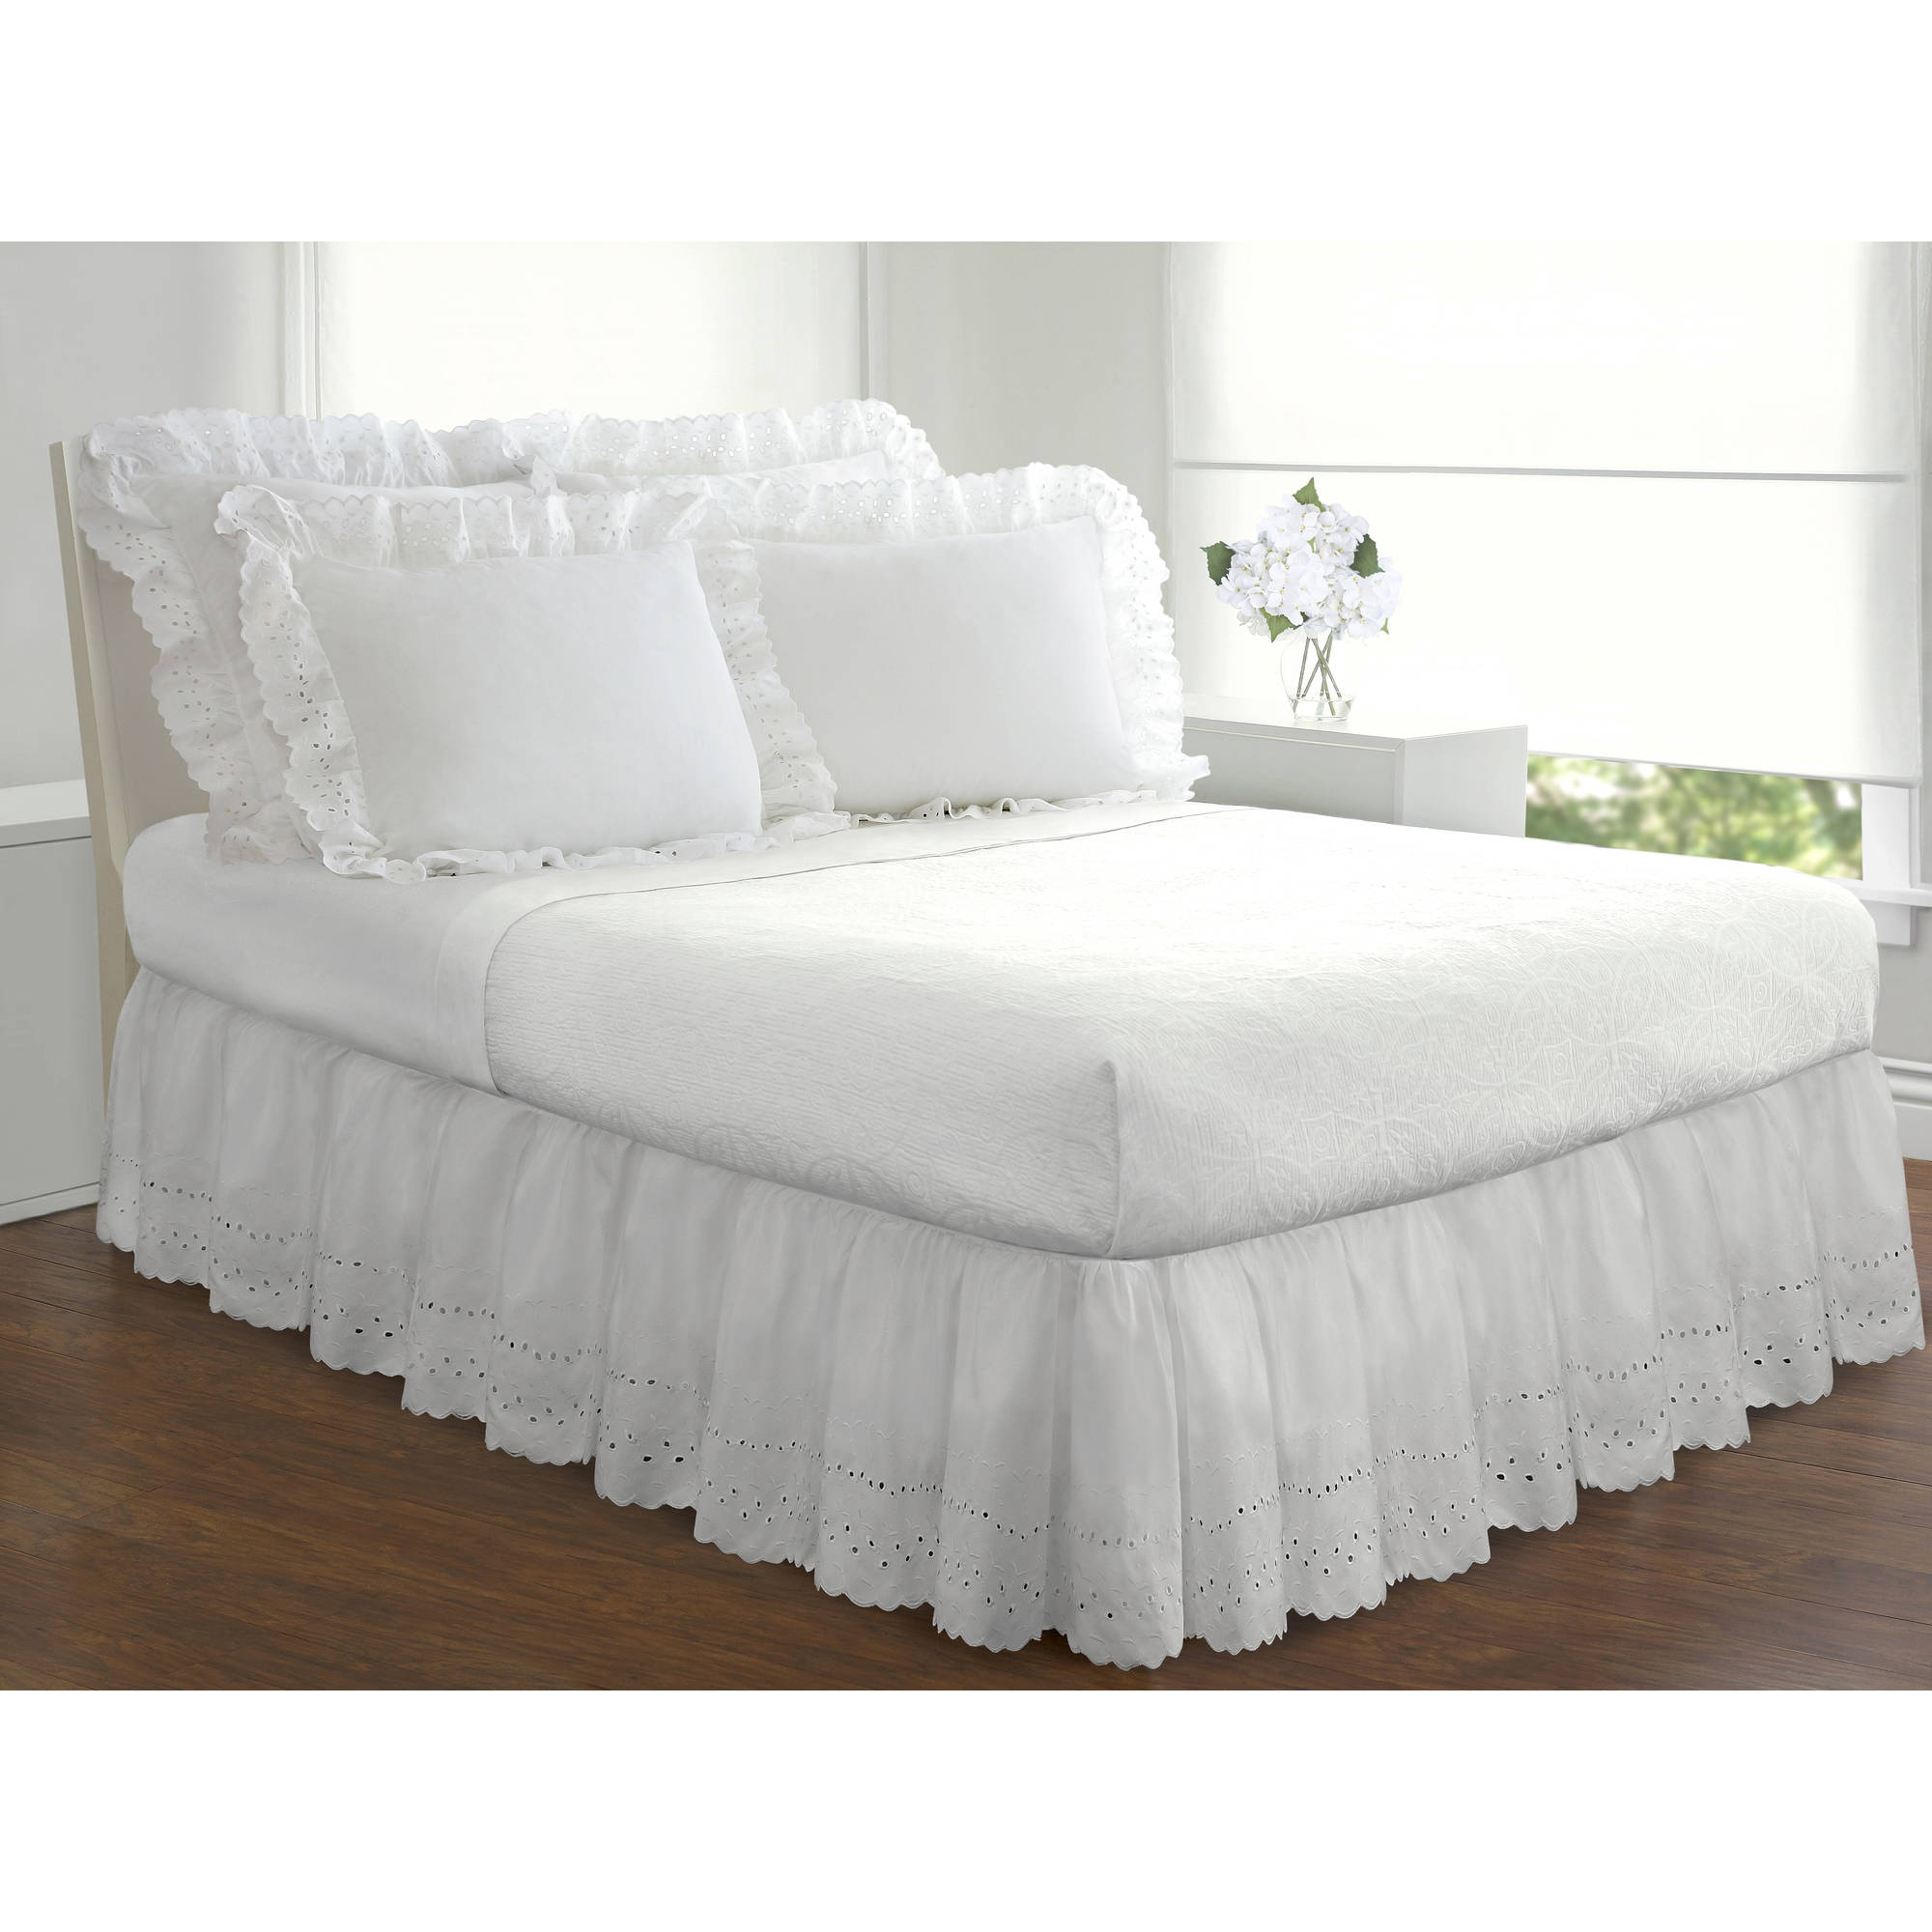 Fresh Ideas Ruffles Eyelet Collection bed skirts and shams sold